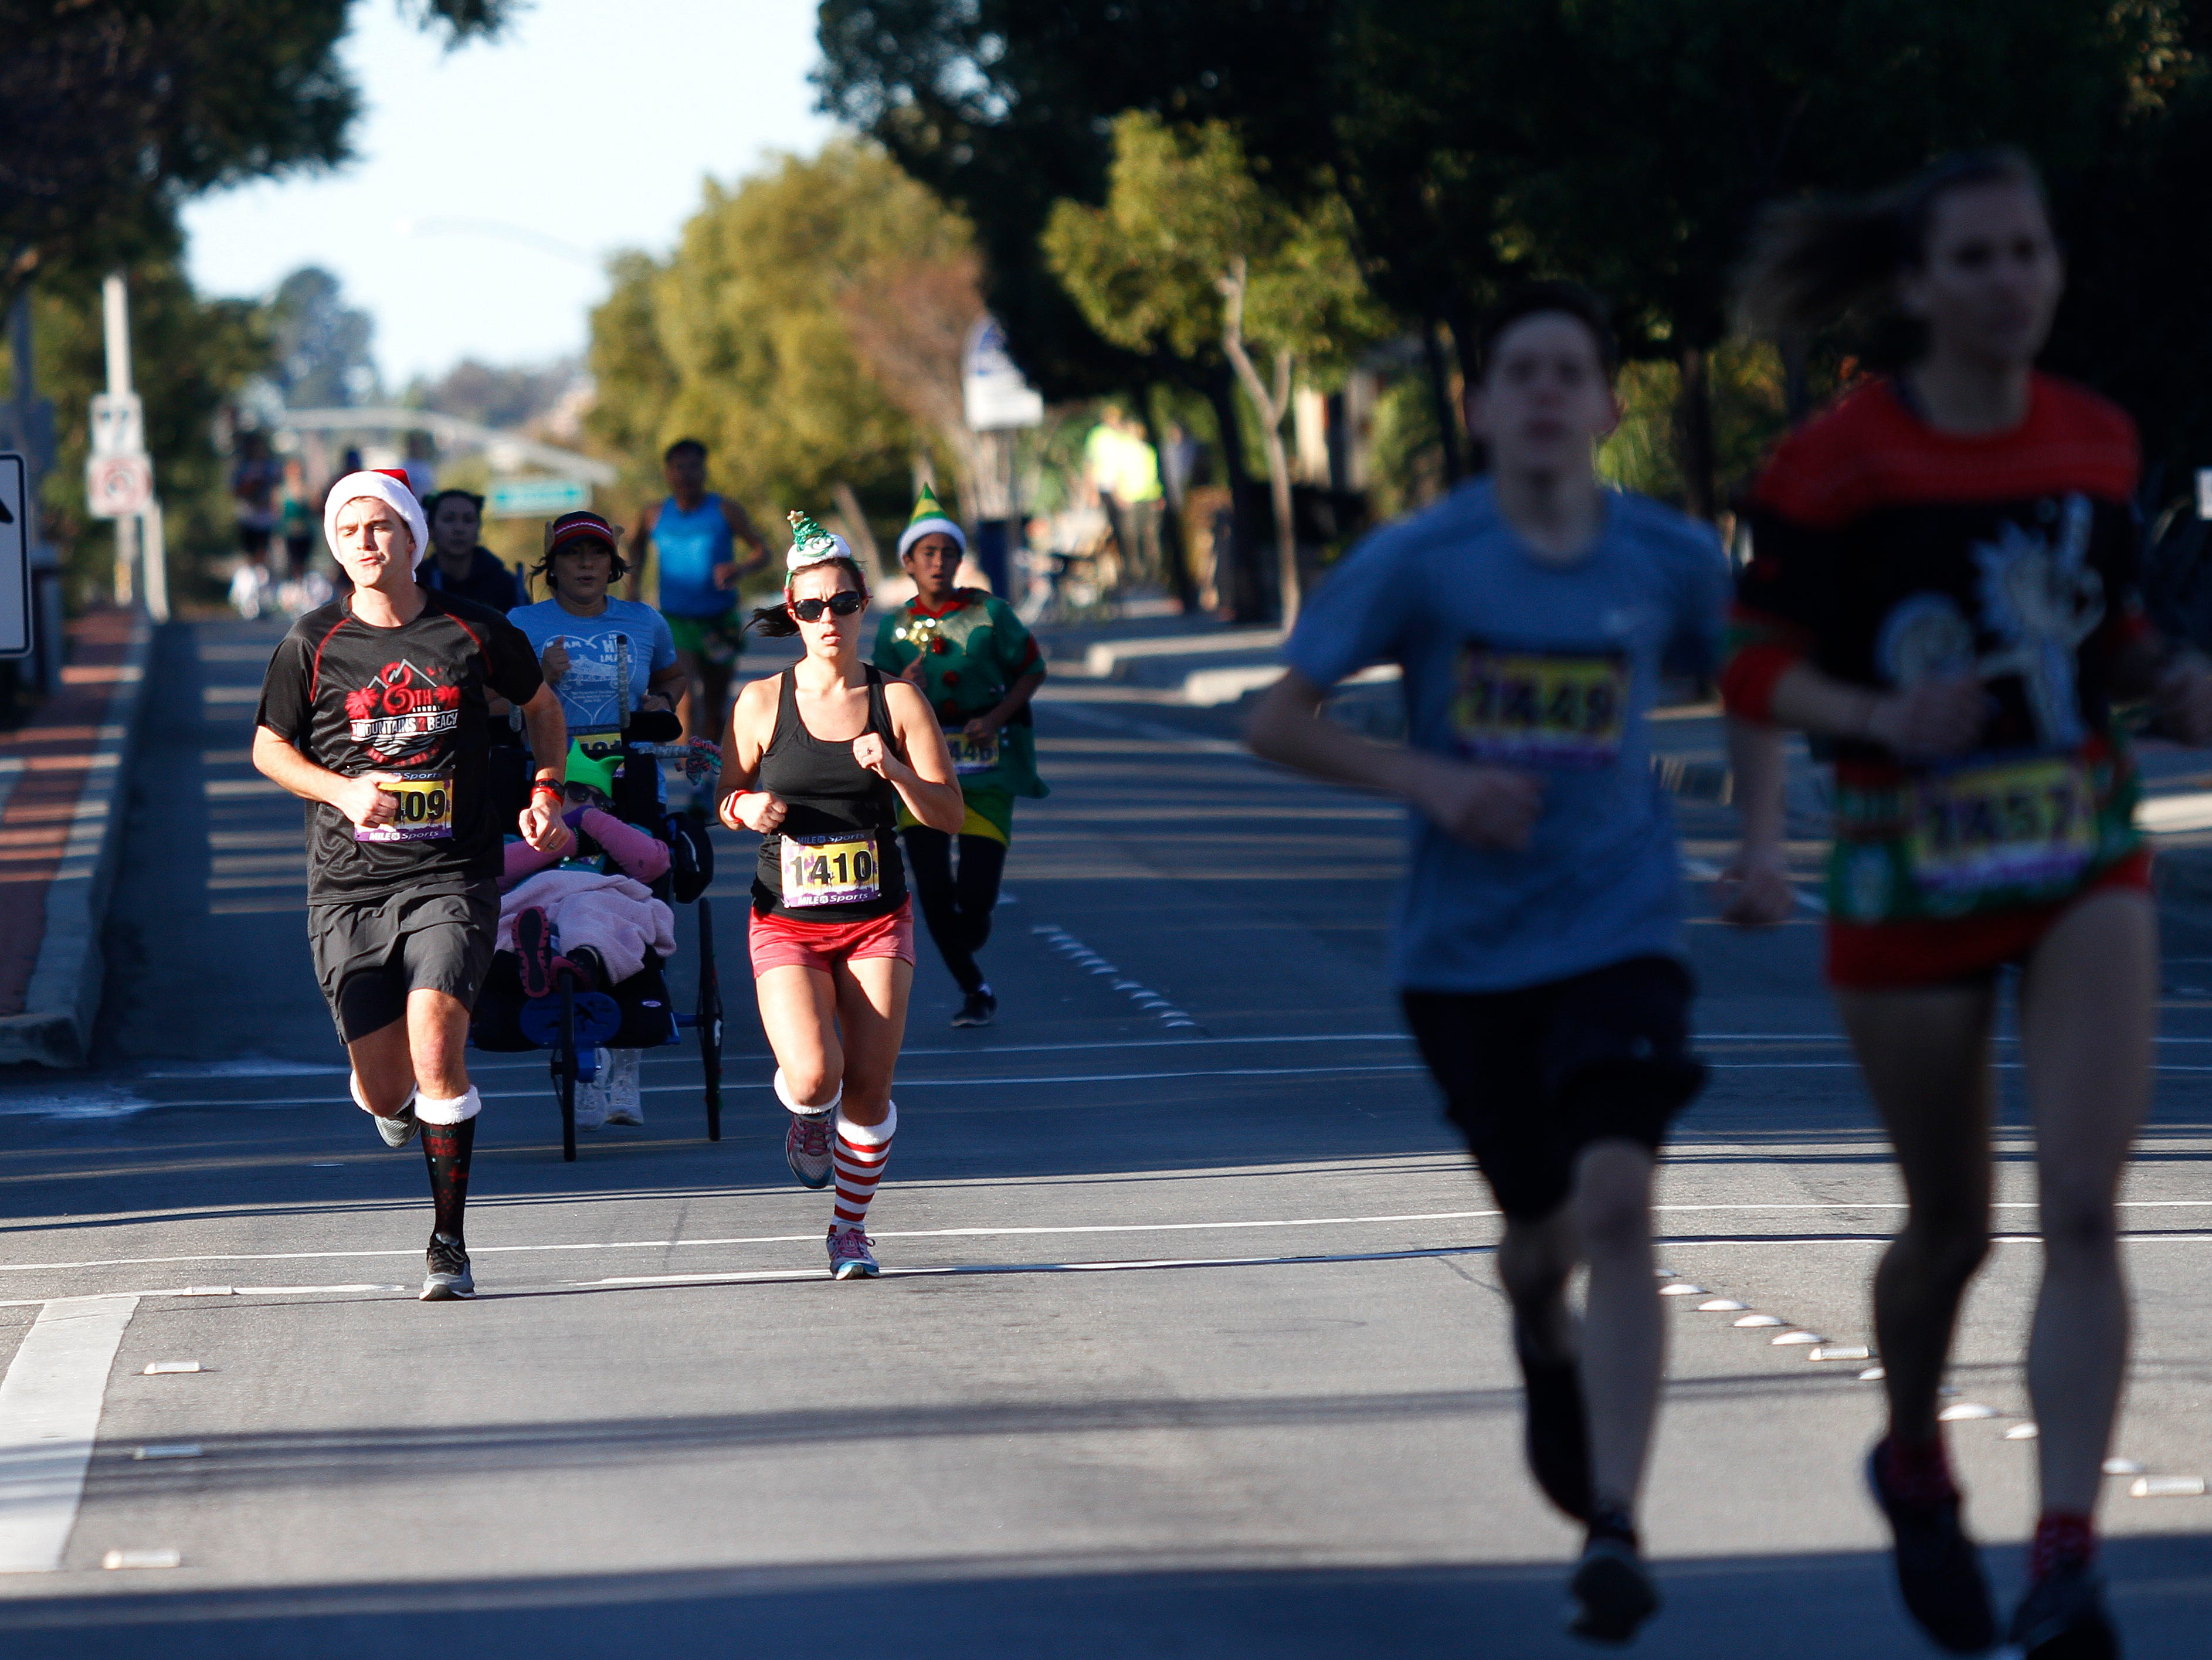 Brad and Rebecca Durant participate in the 5K run Saturday on Las Posas Road during Christmas festivities in Camarillo that included a parade and more.